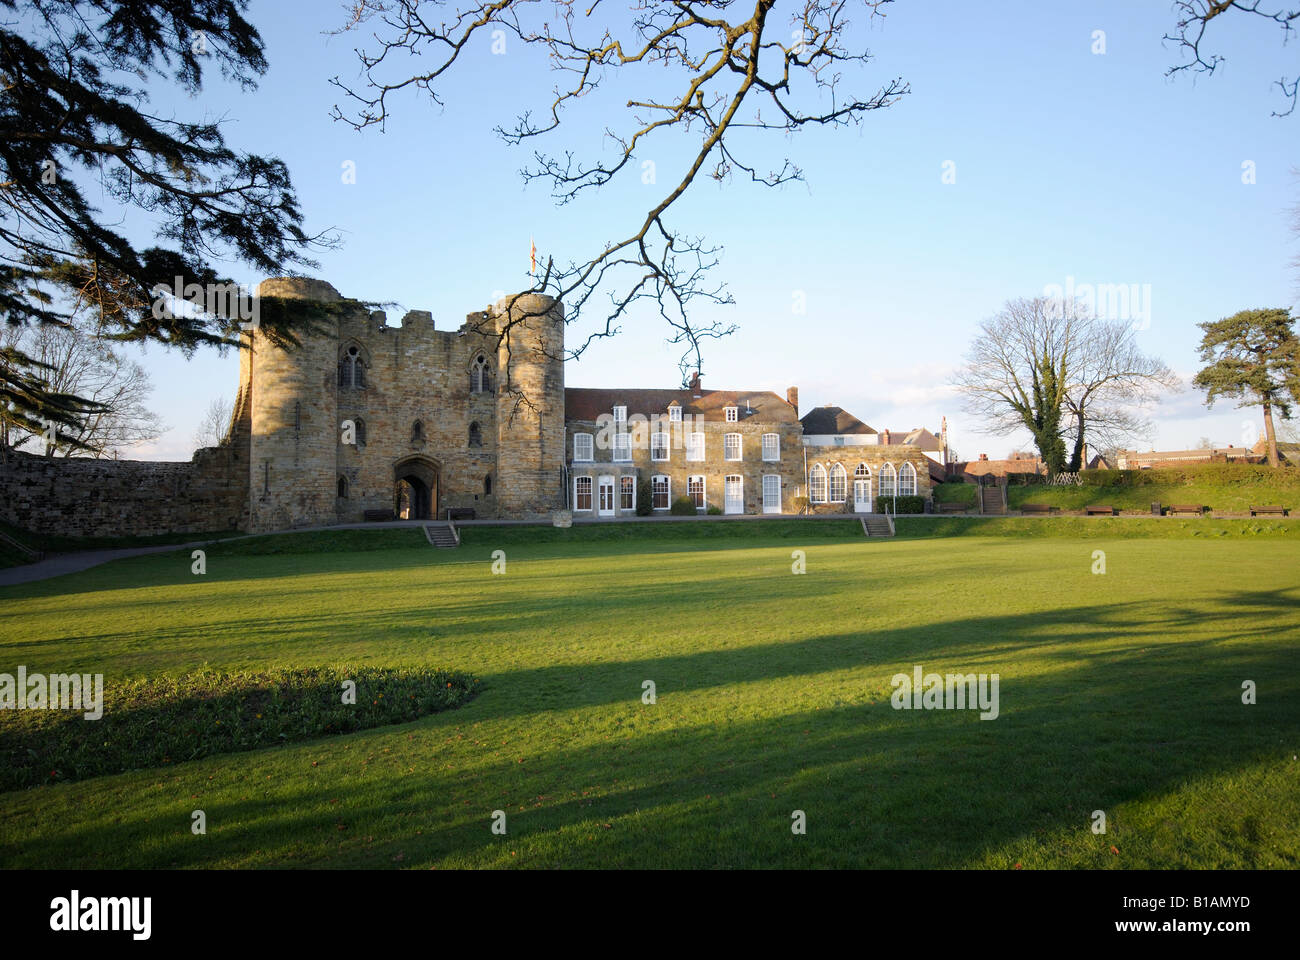 England, UK,  Kent, Tonbridge Castle - Stock Image